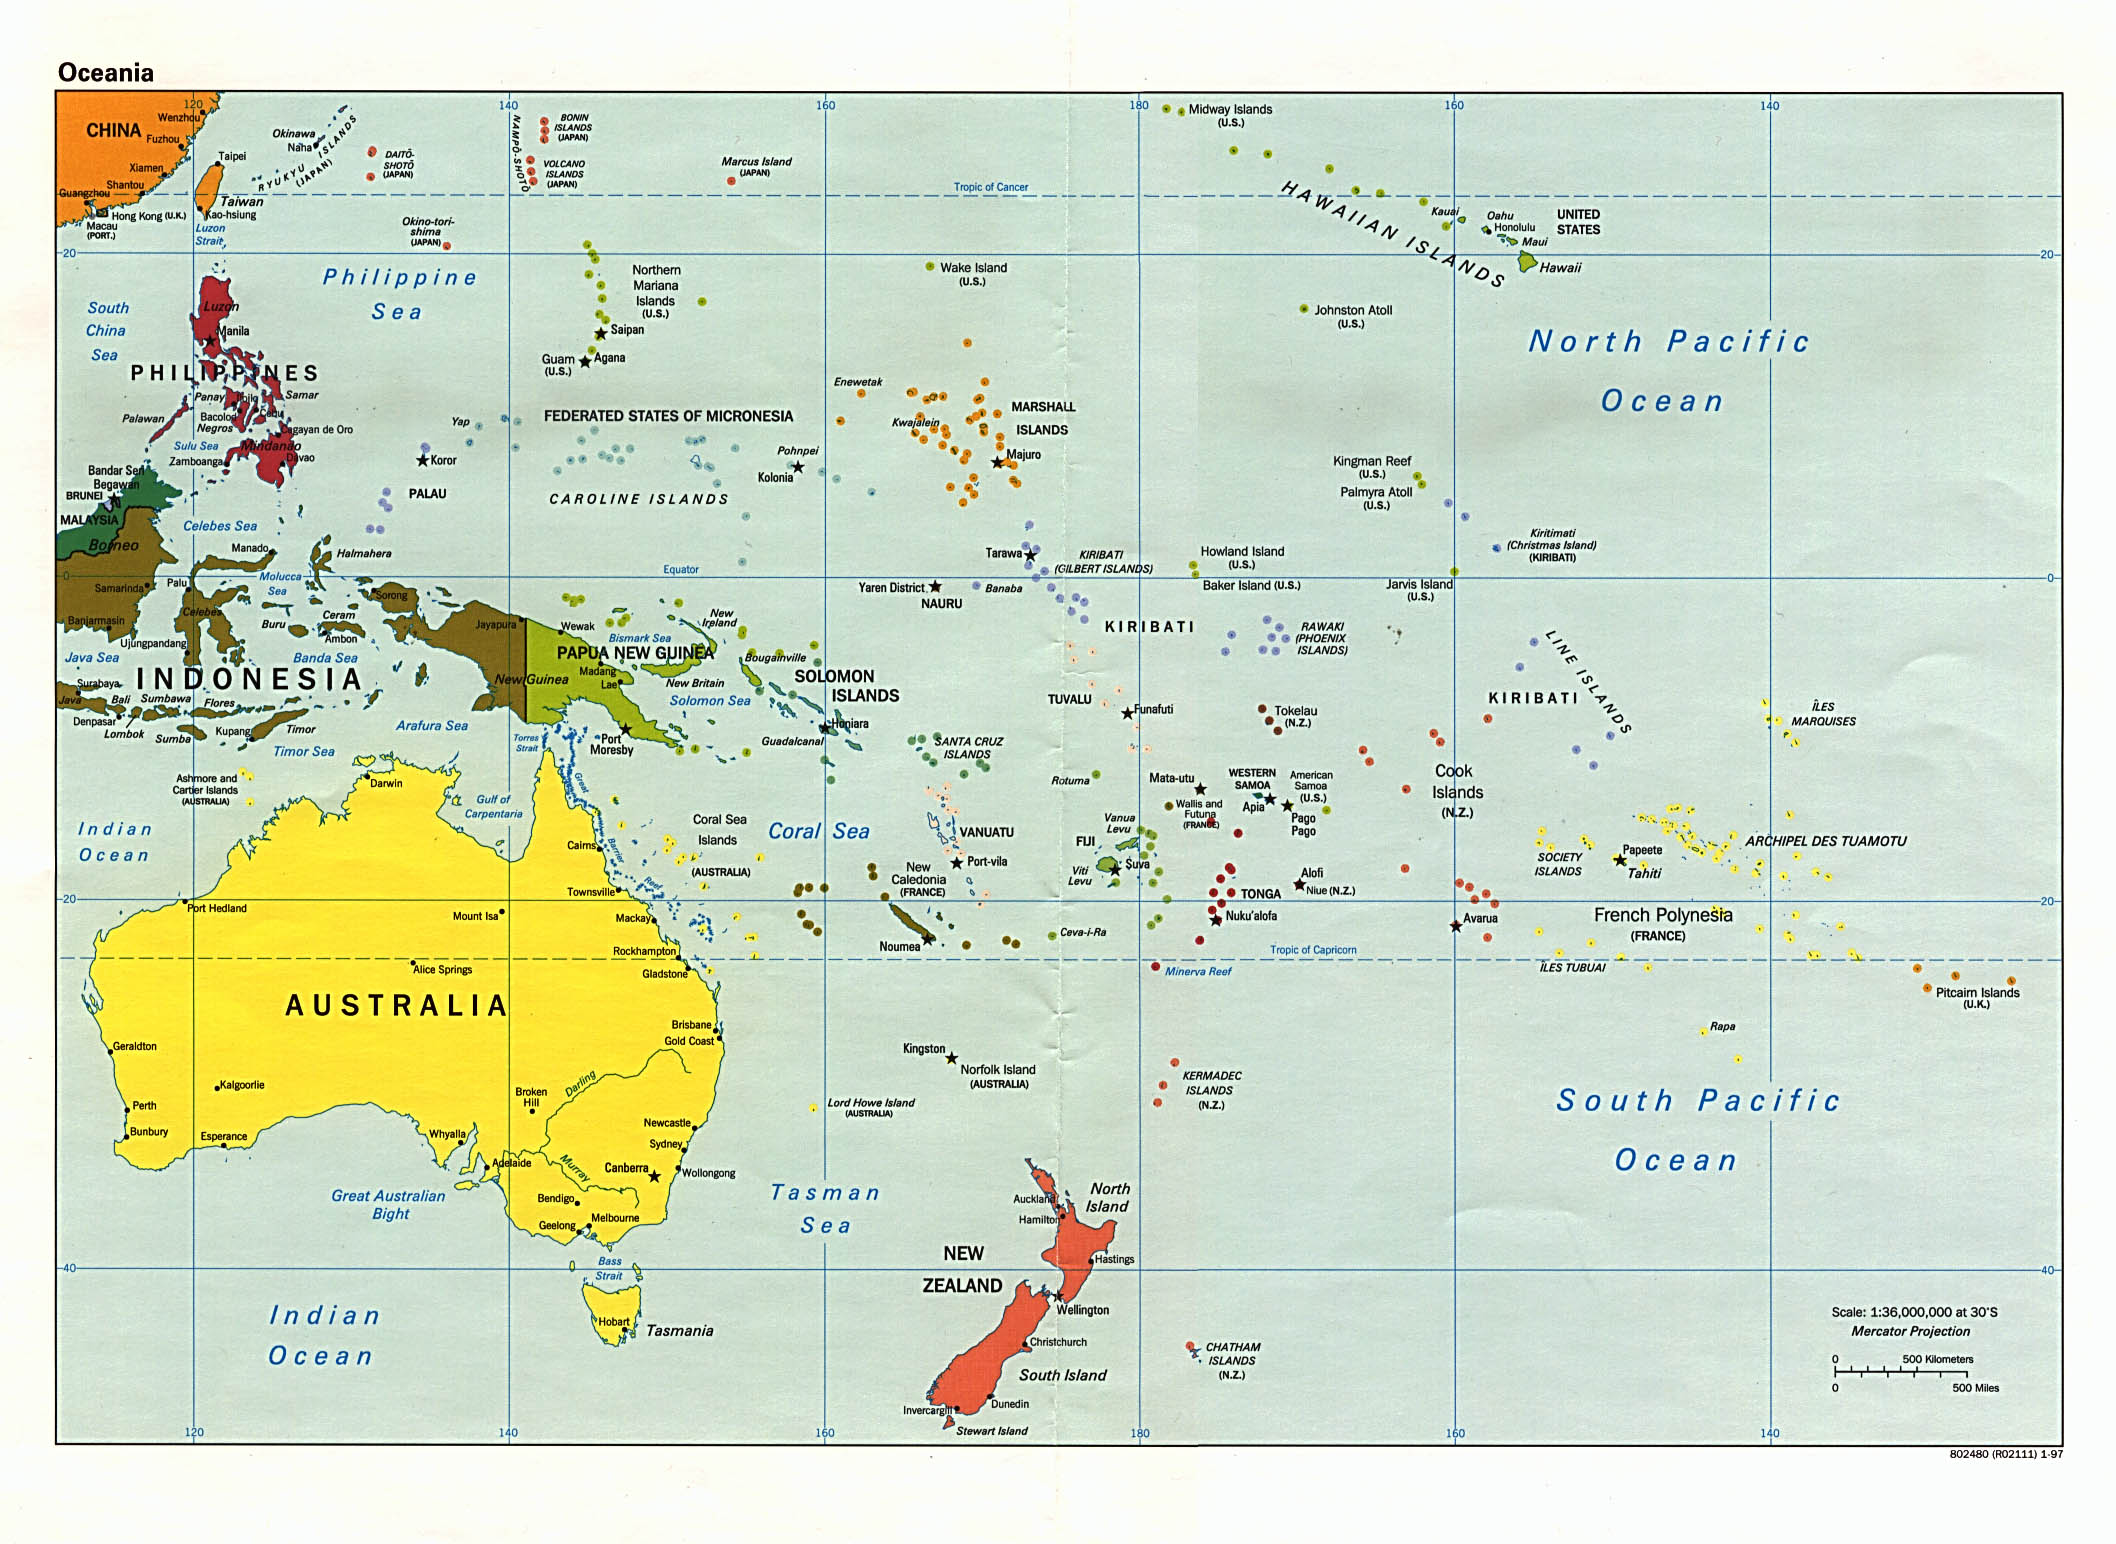 Oceania political map 1997